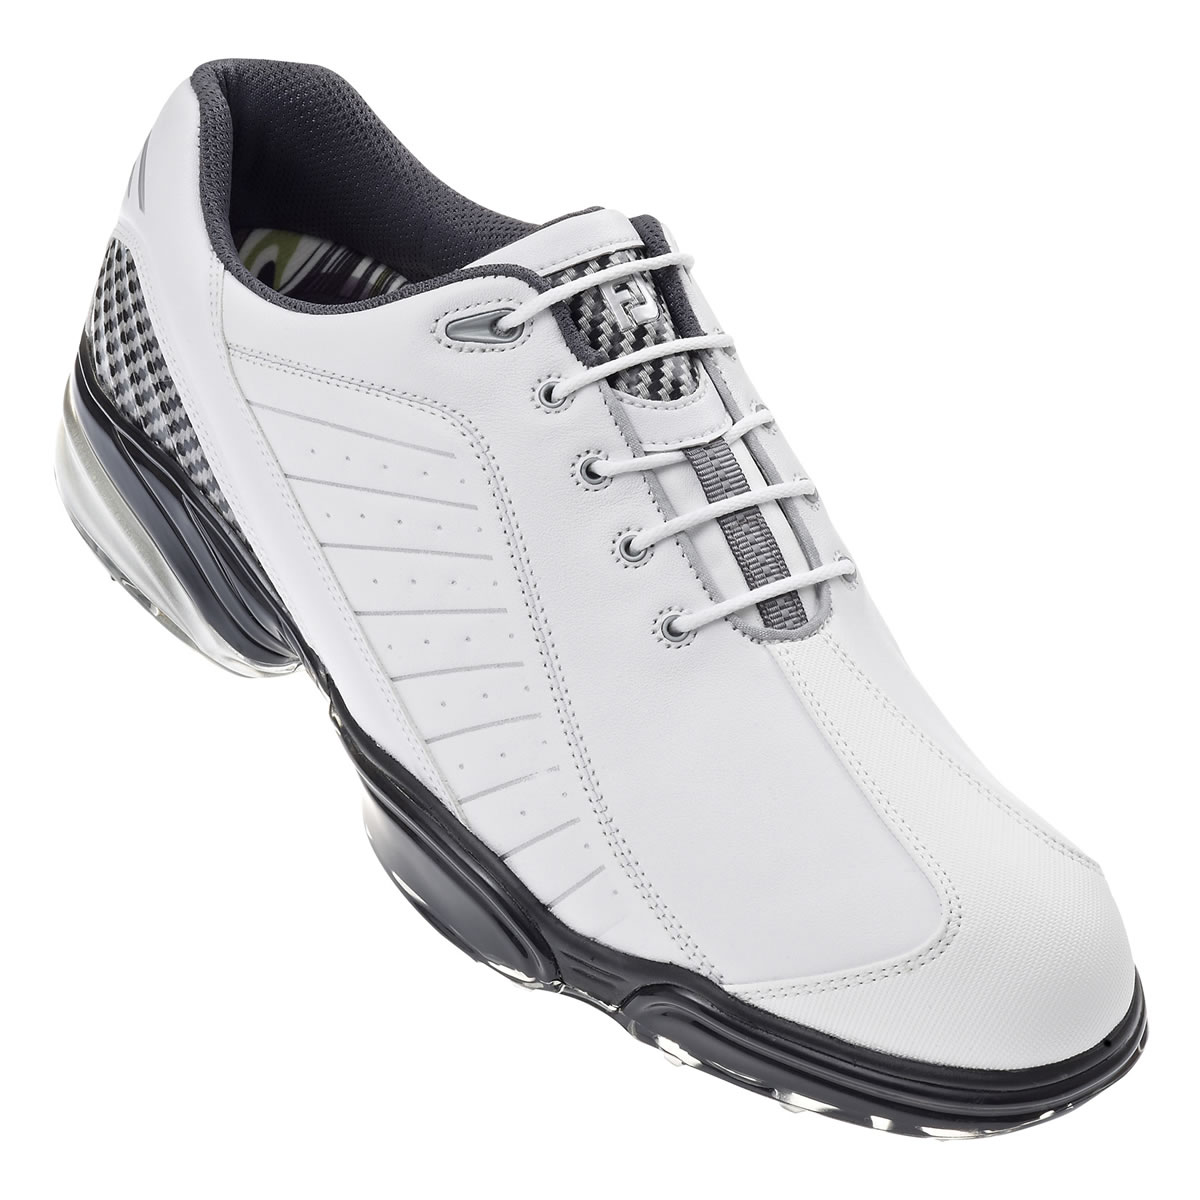 footjoy sport golf shoes white 53197 review compare